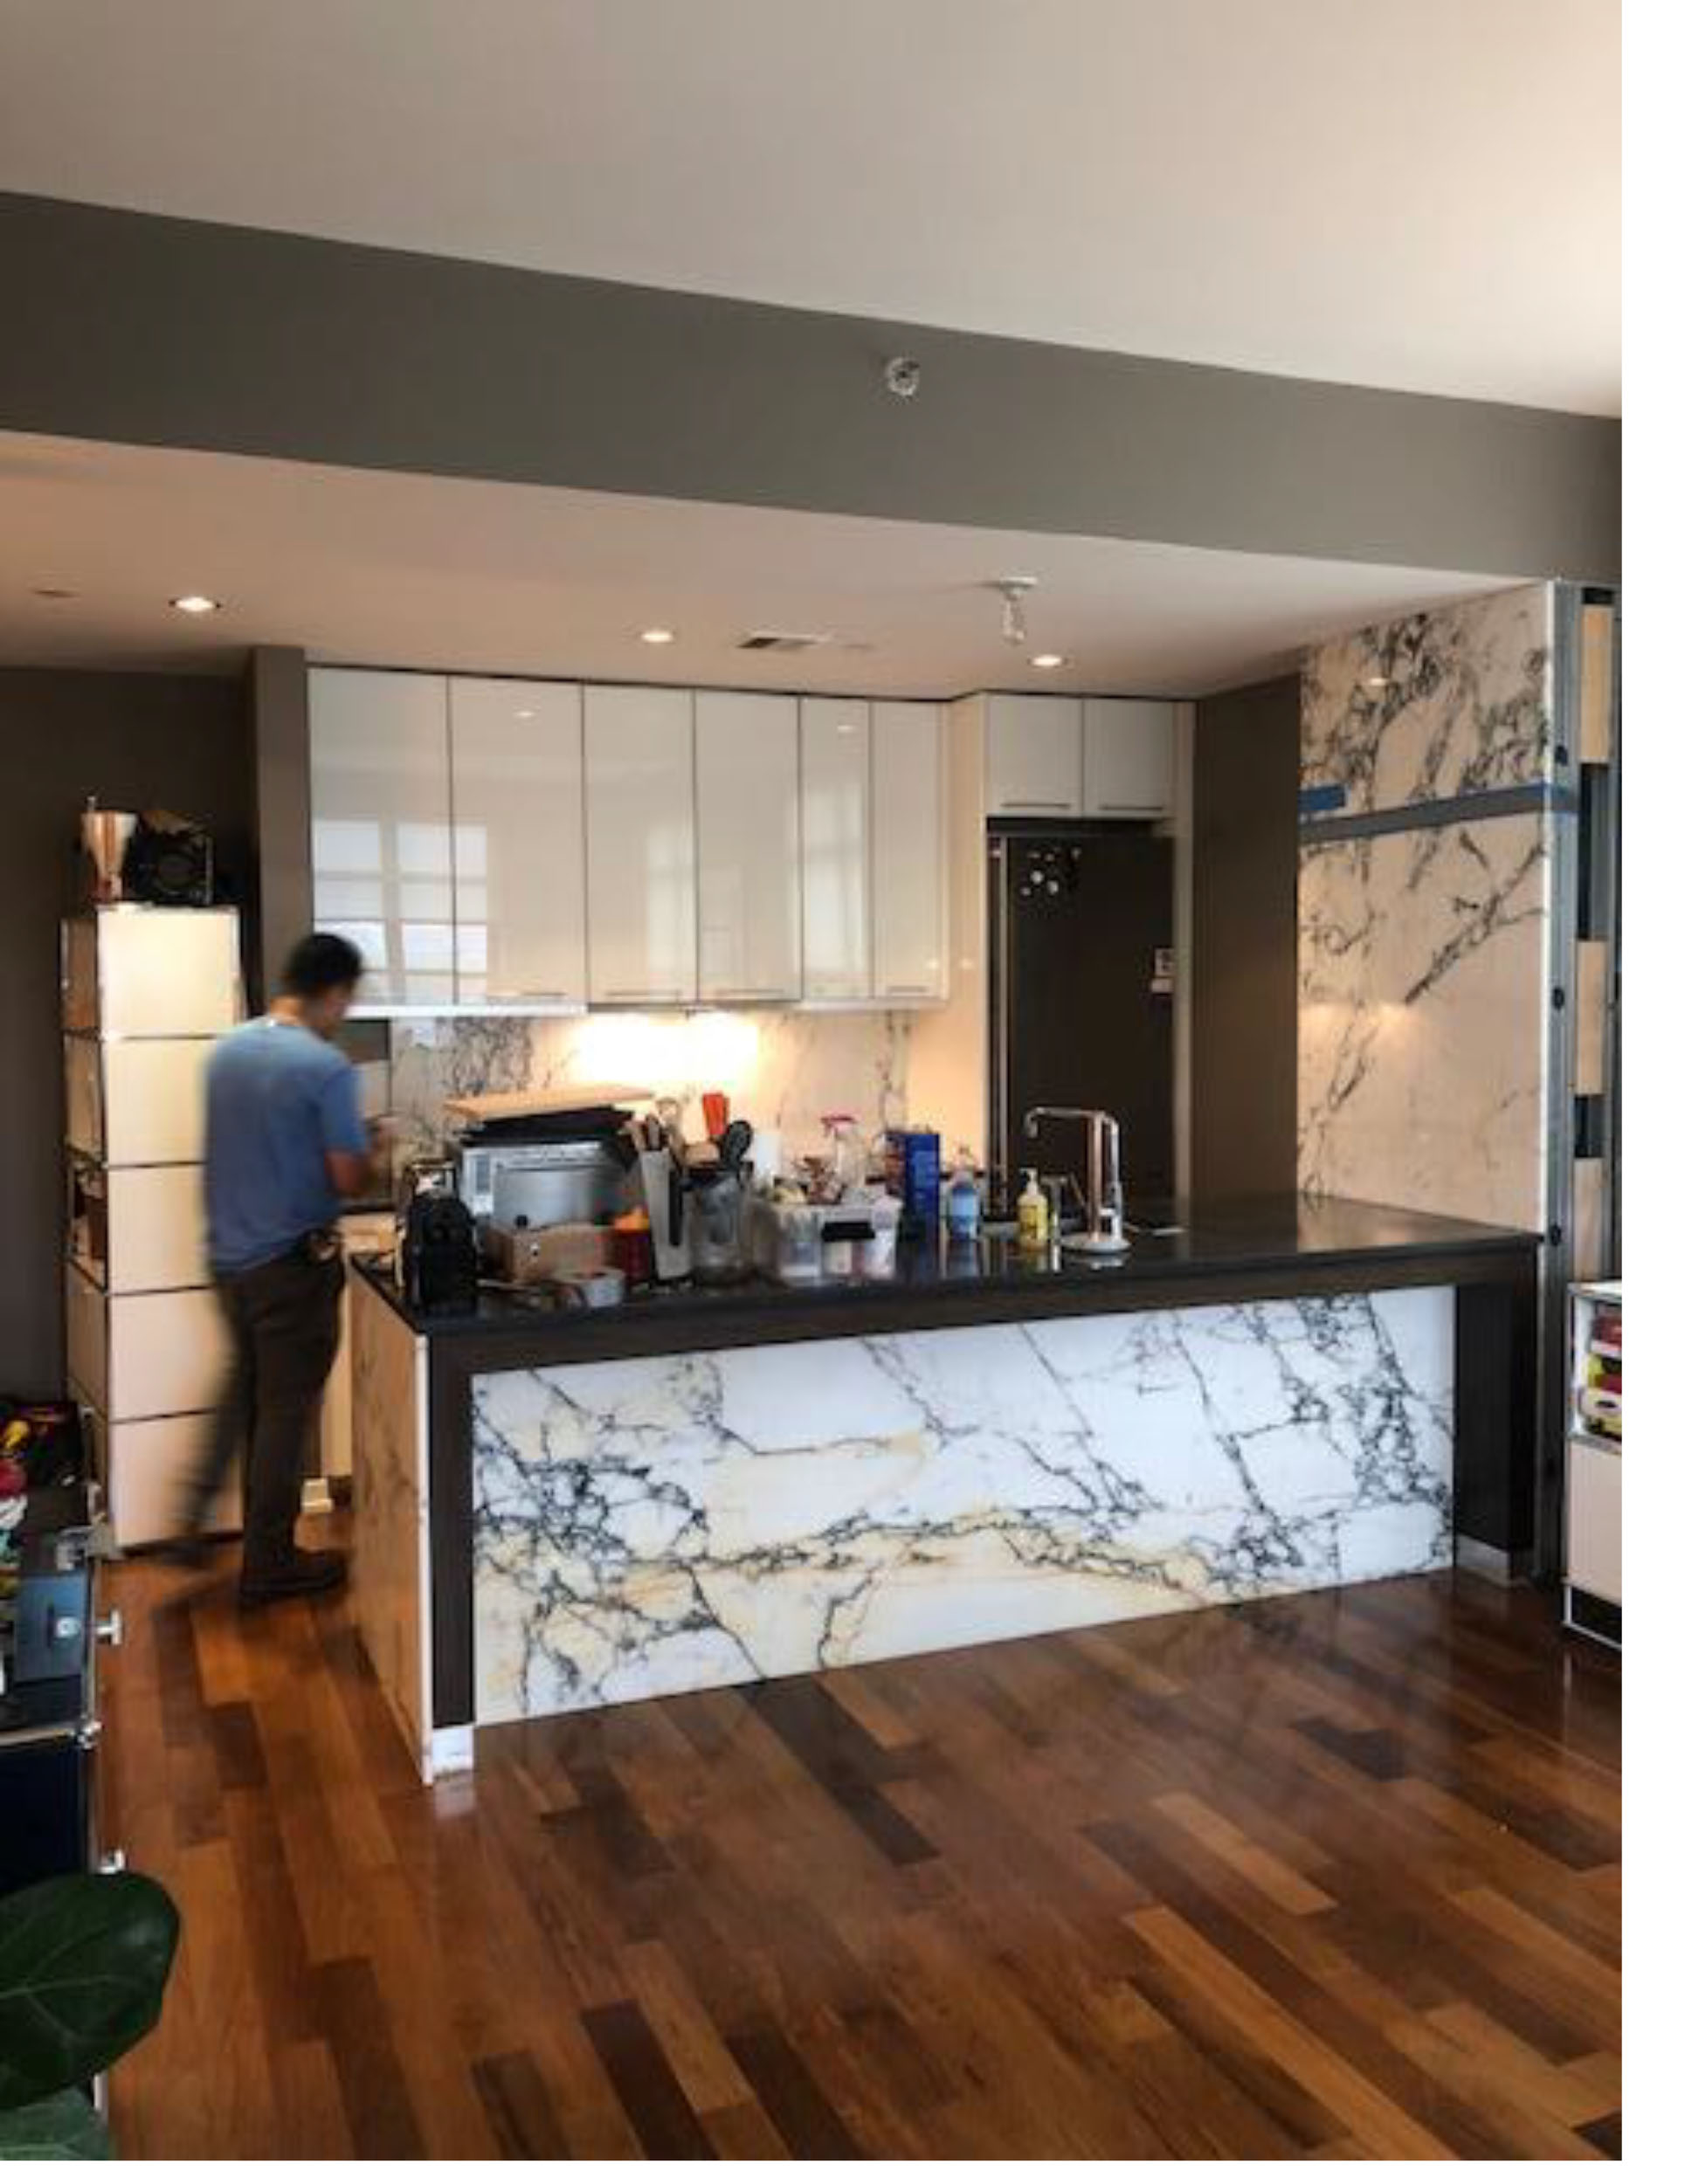 - FORO MARBLE CO.Foro Marble CompanyNew Kitchen Install - Counters